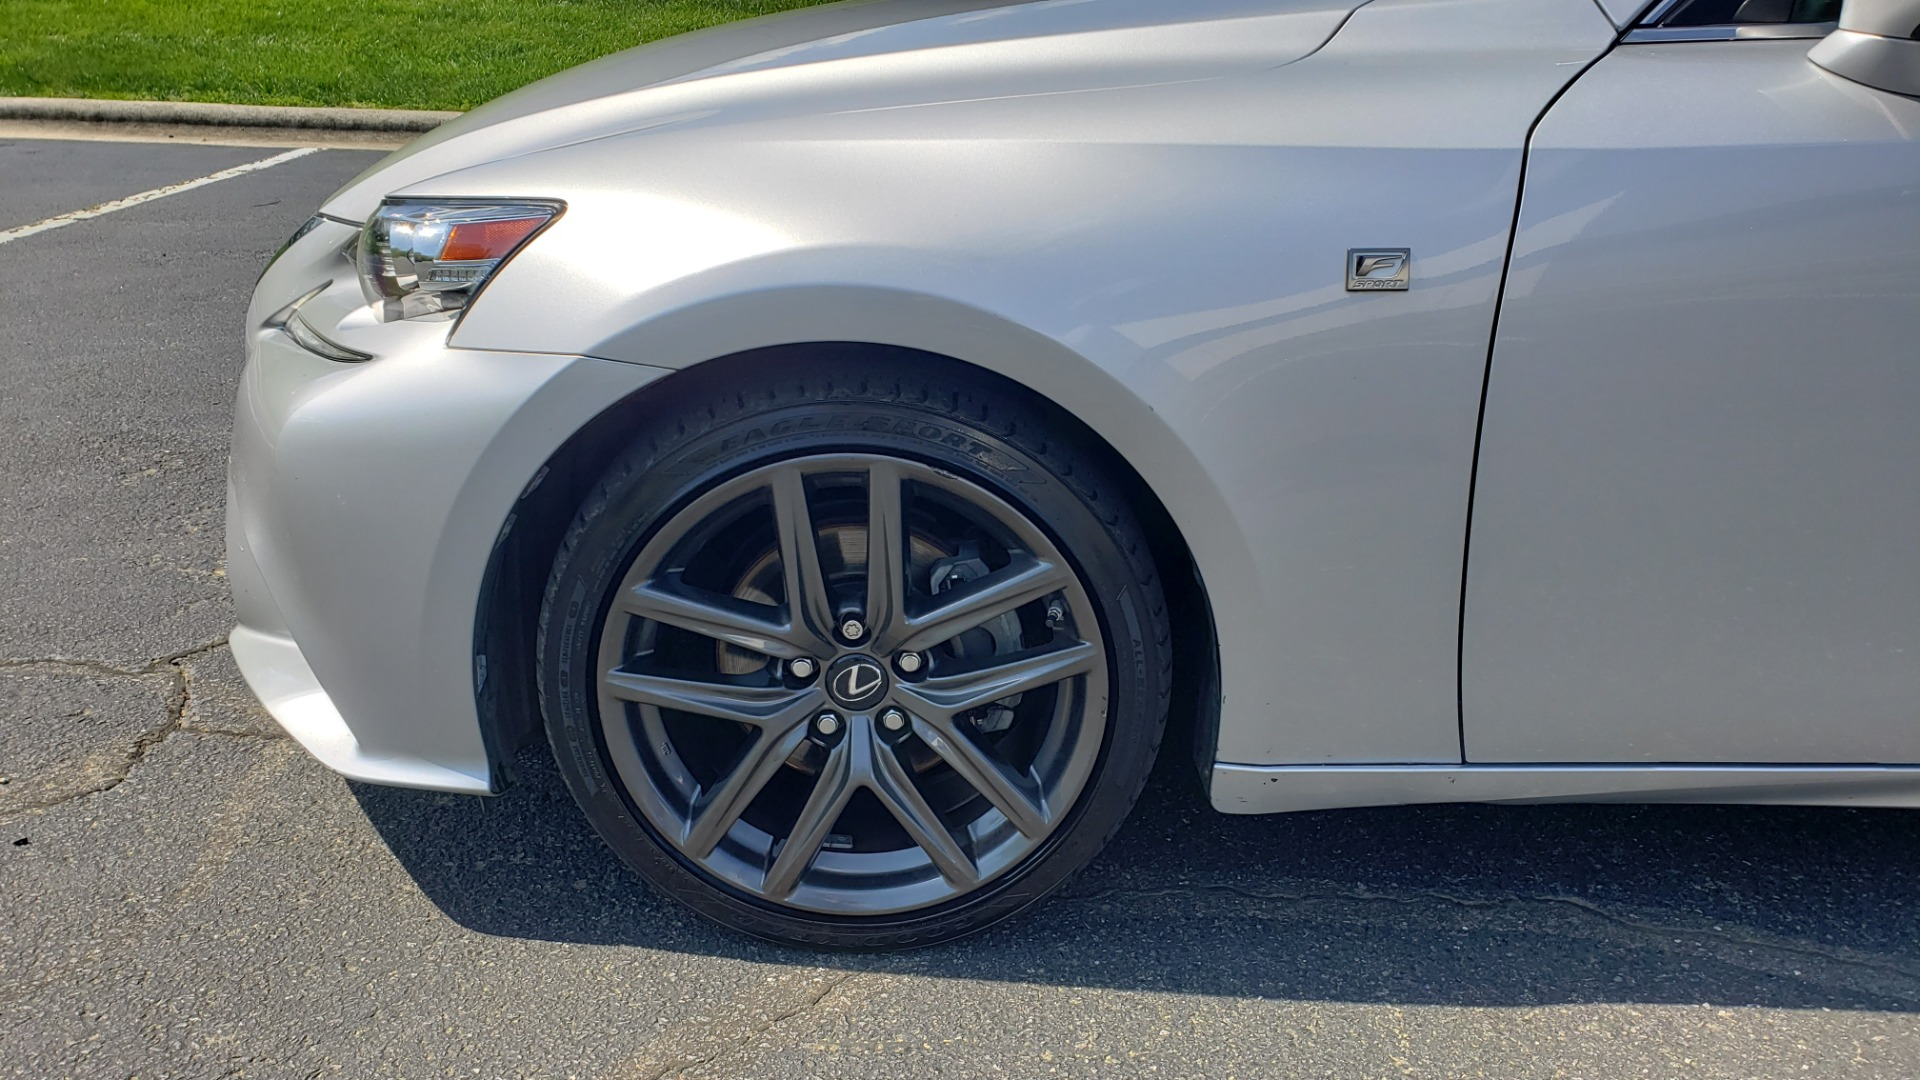 Used 2015 Lexus IS 250 F-SPORT / BSM / SUNROOF / VENT SEATS / REARVIEW for sale Sold at Formula Imports in Charlotte NC 28227 9